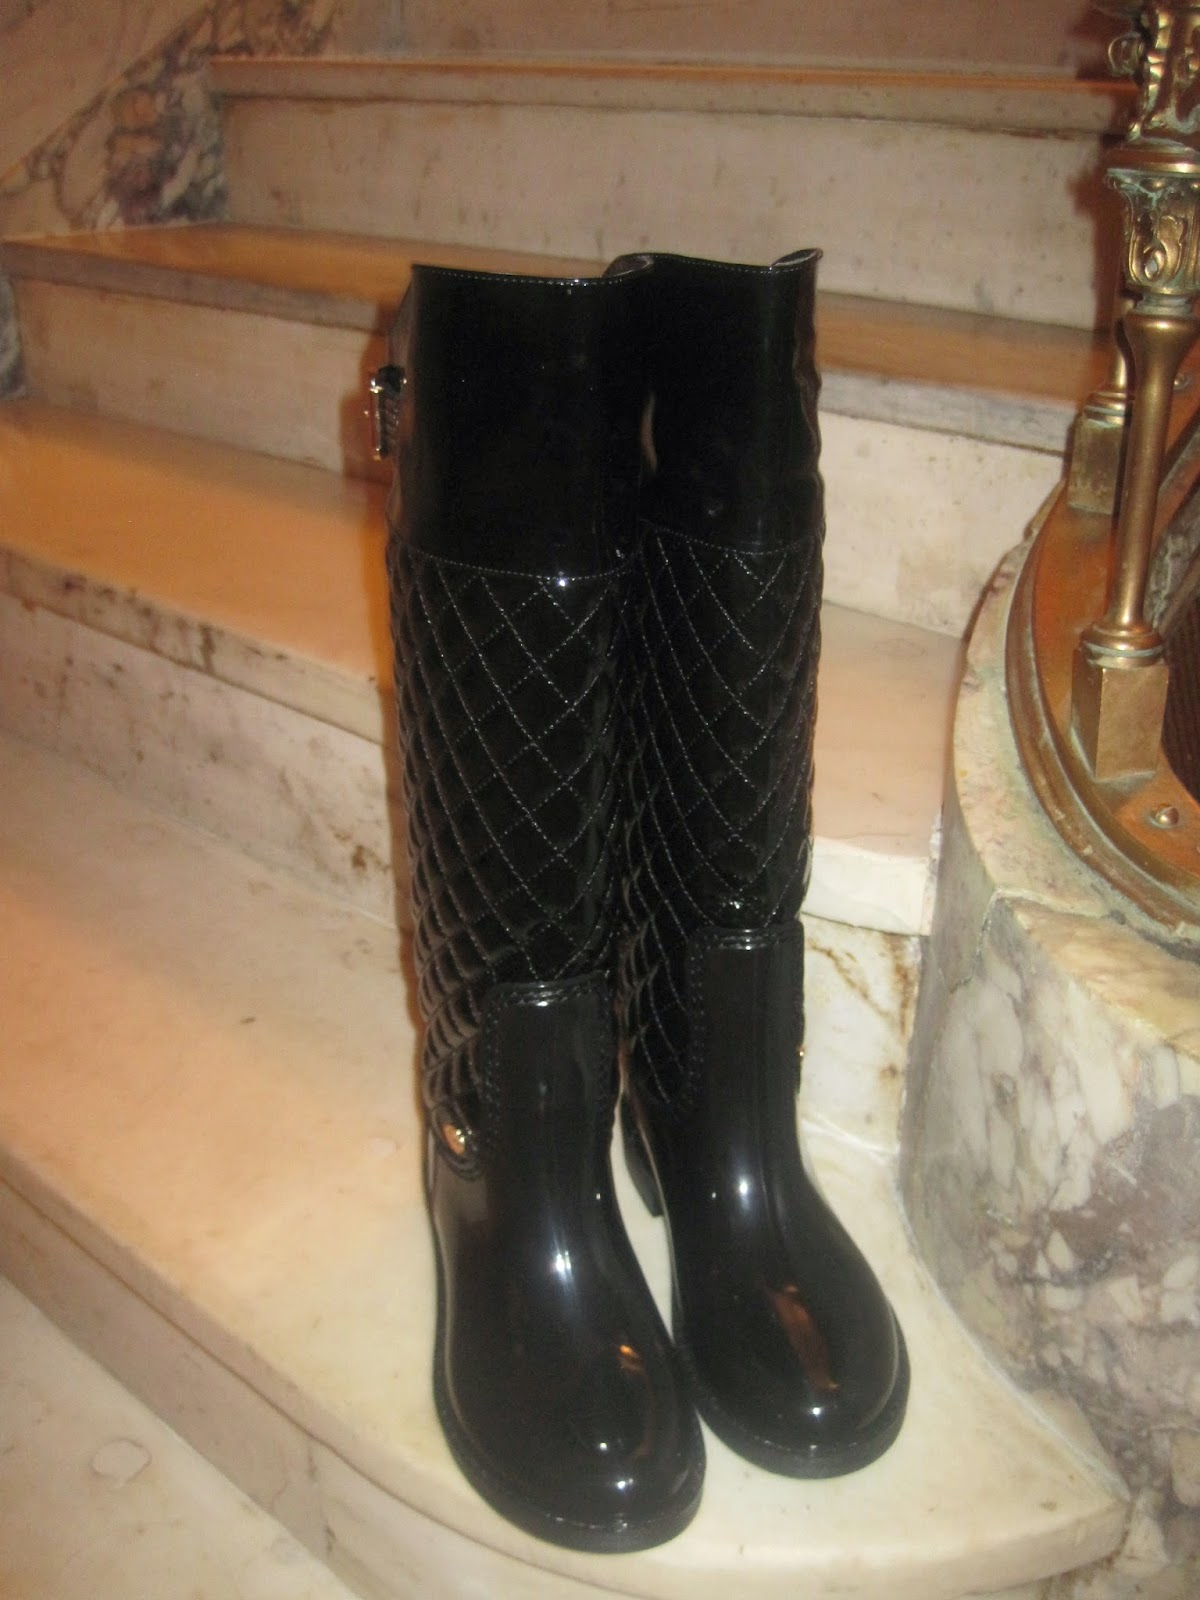 b111428e04d When you wear Posh Wellies, your feet and legs in Emilio Cavallini are  protected!